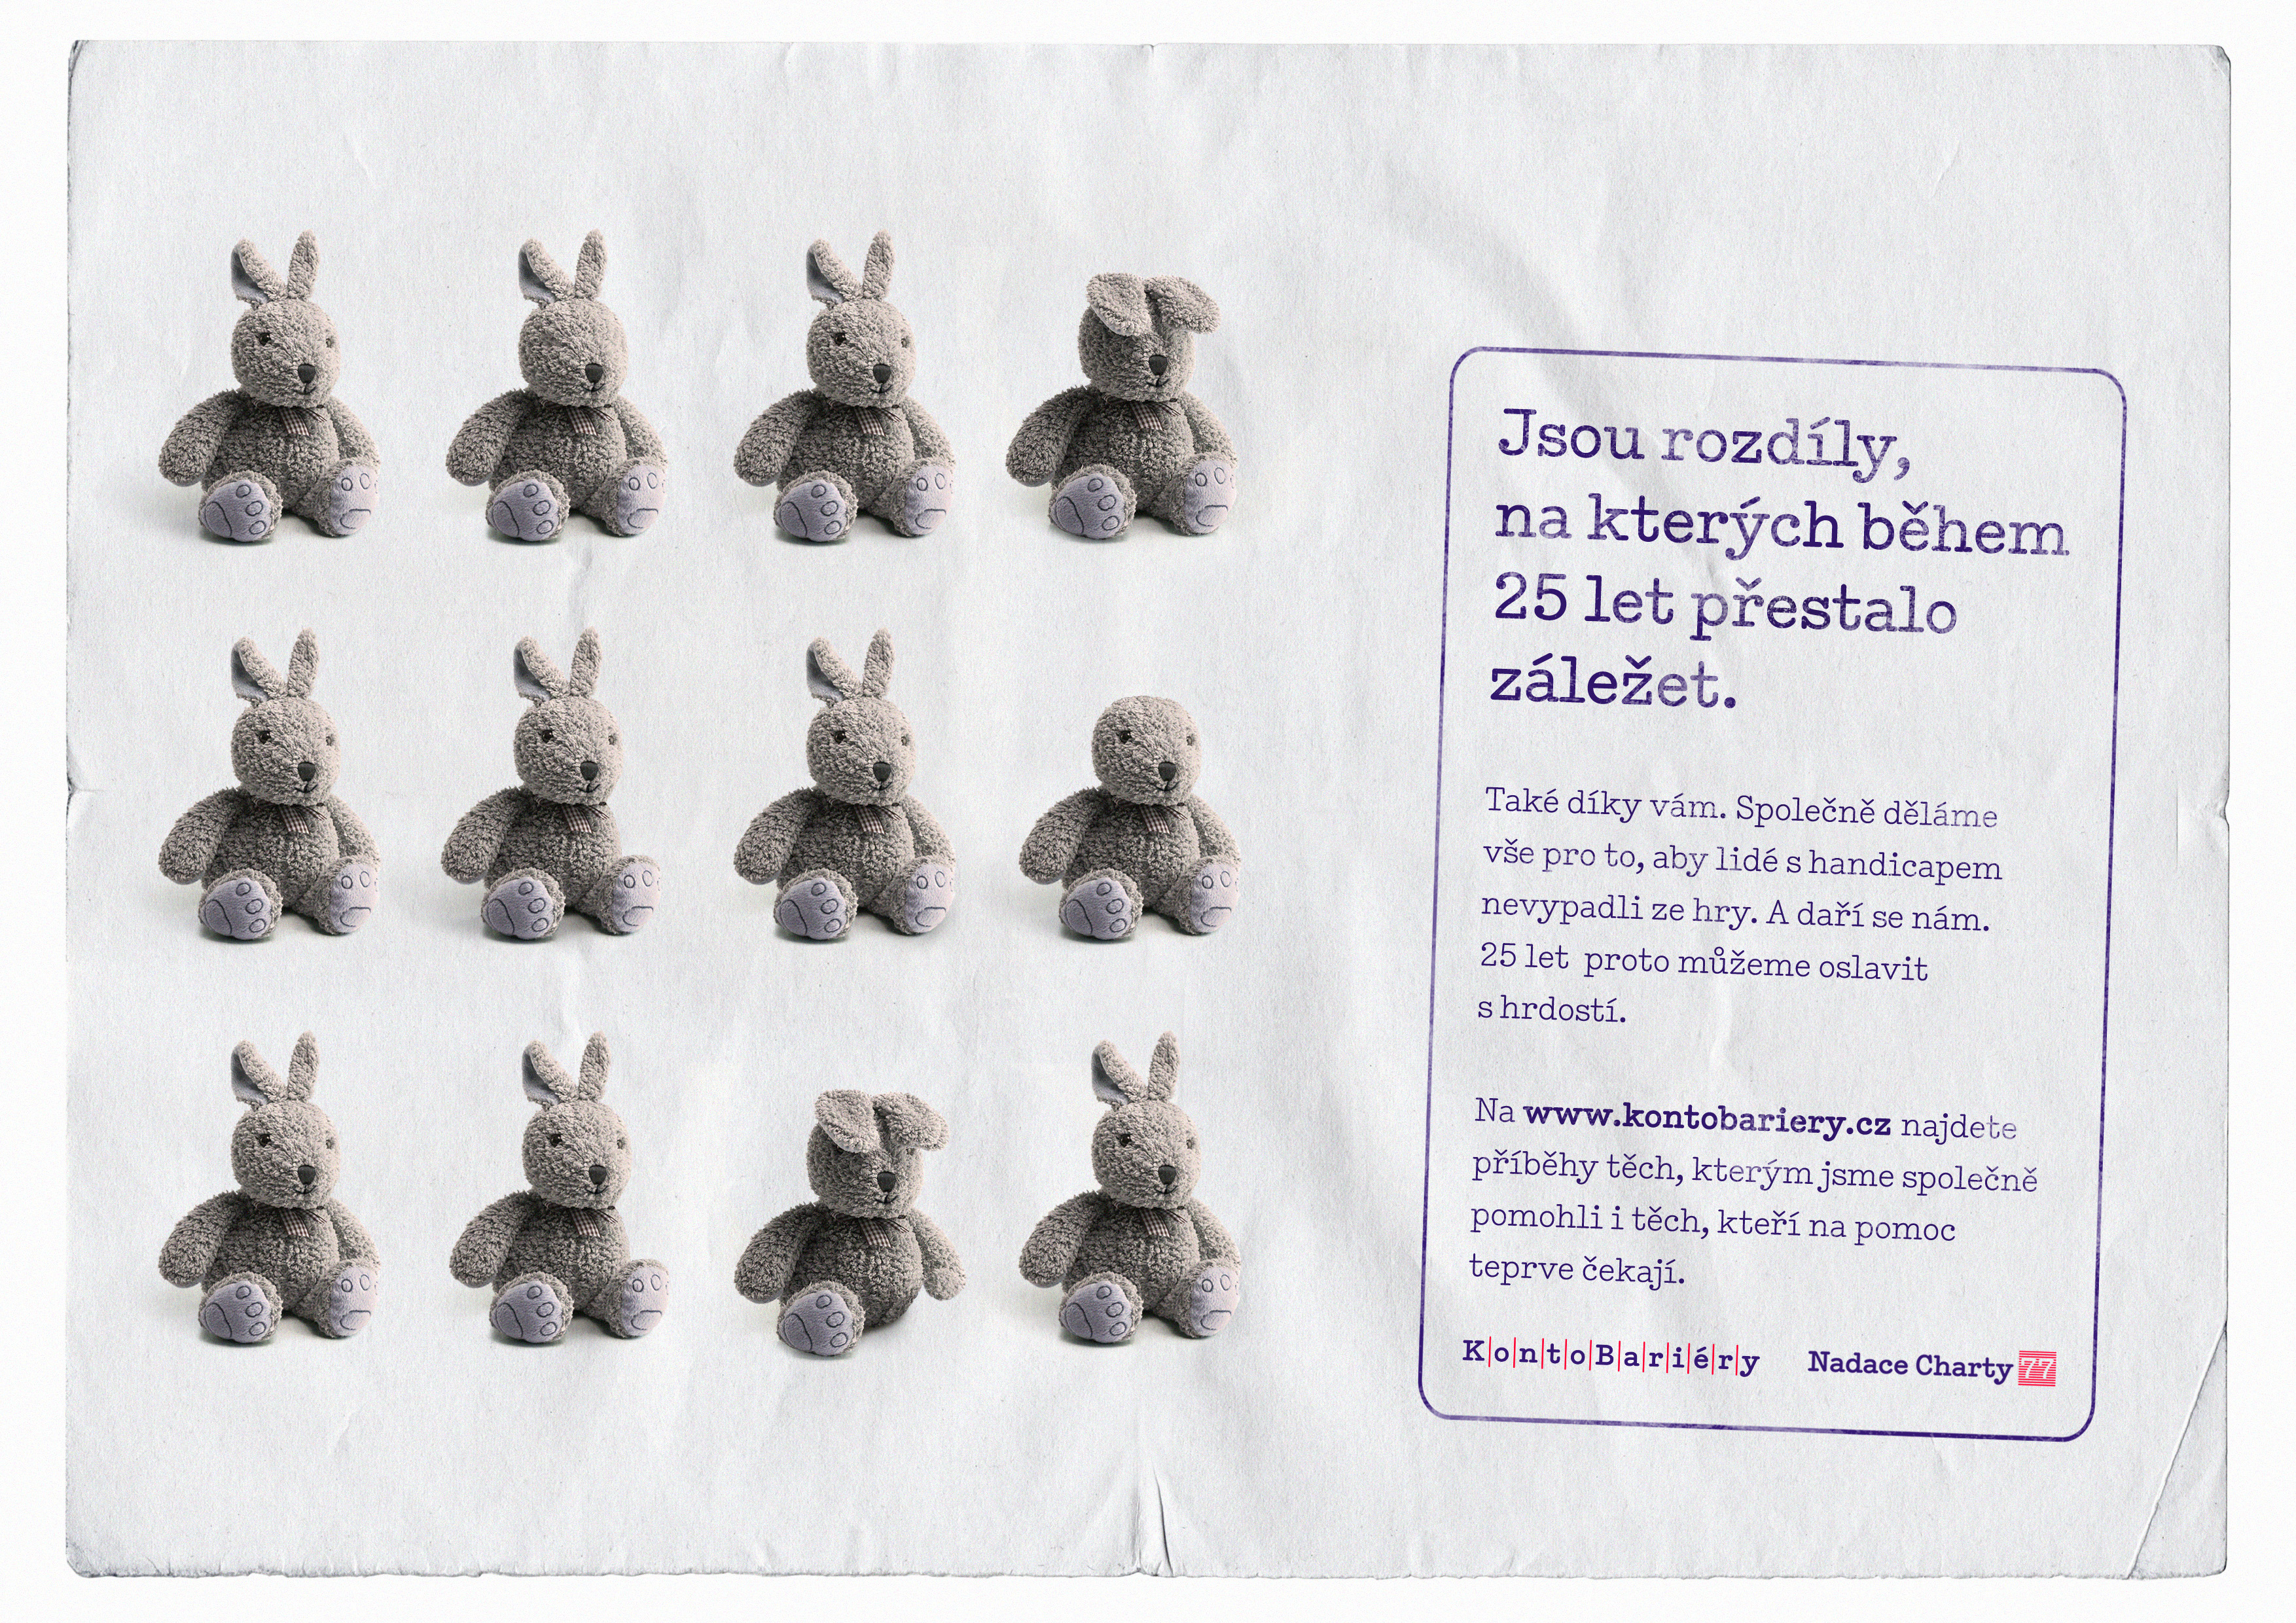 https://younglions.cz/wp-content/uploads/superforms/2017/04/390991680/yl17print1.jpg